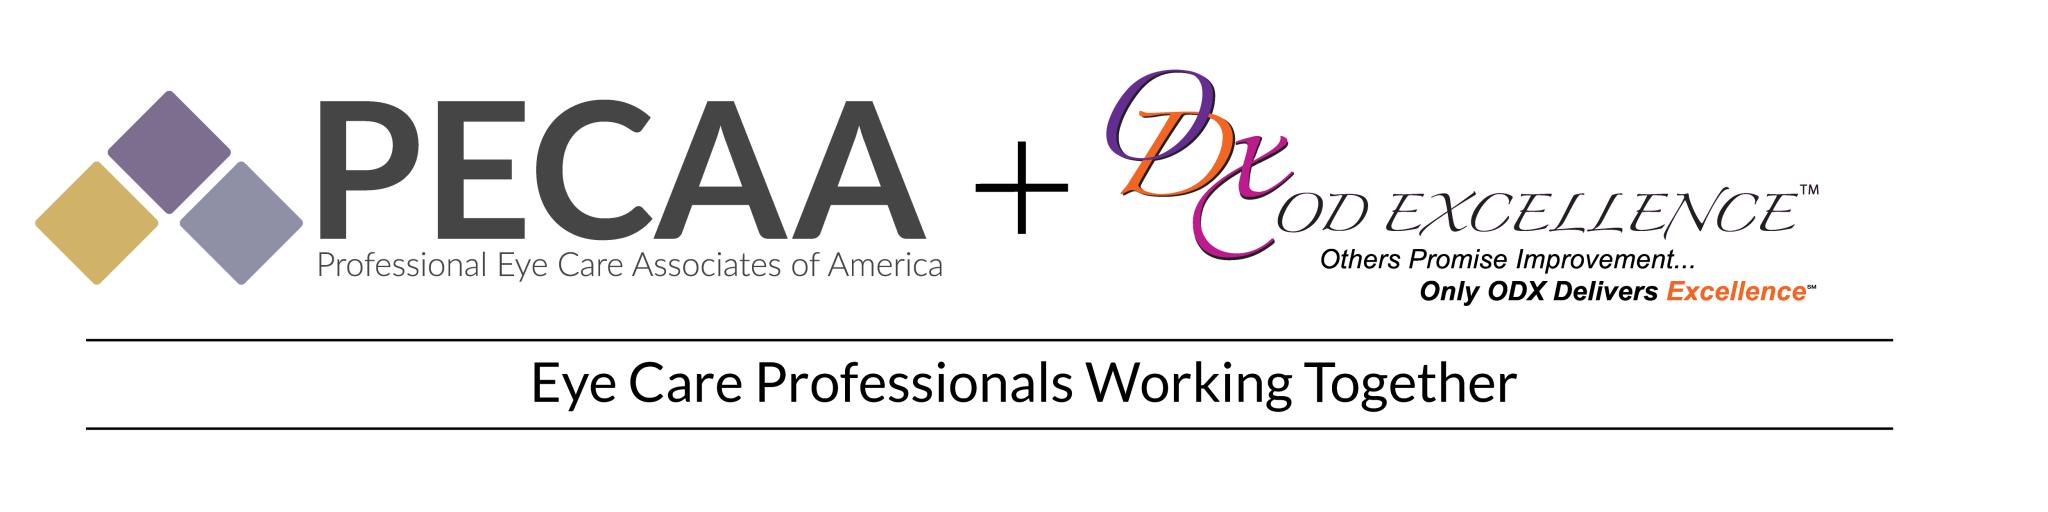 PECAA and OD Excellence Announce Merger Agreement